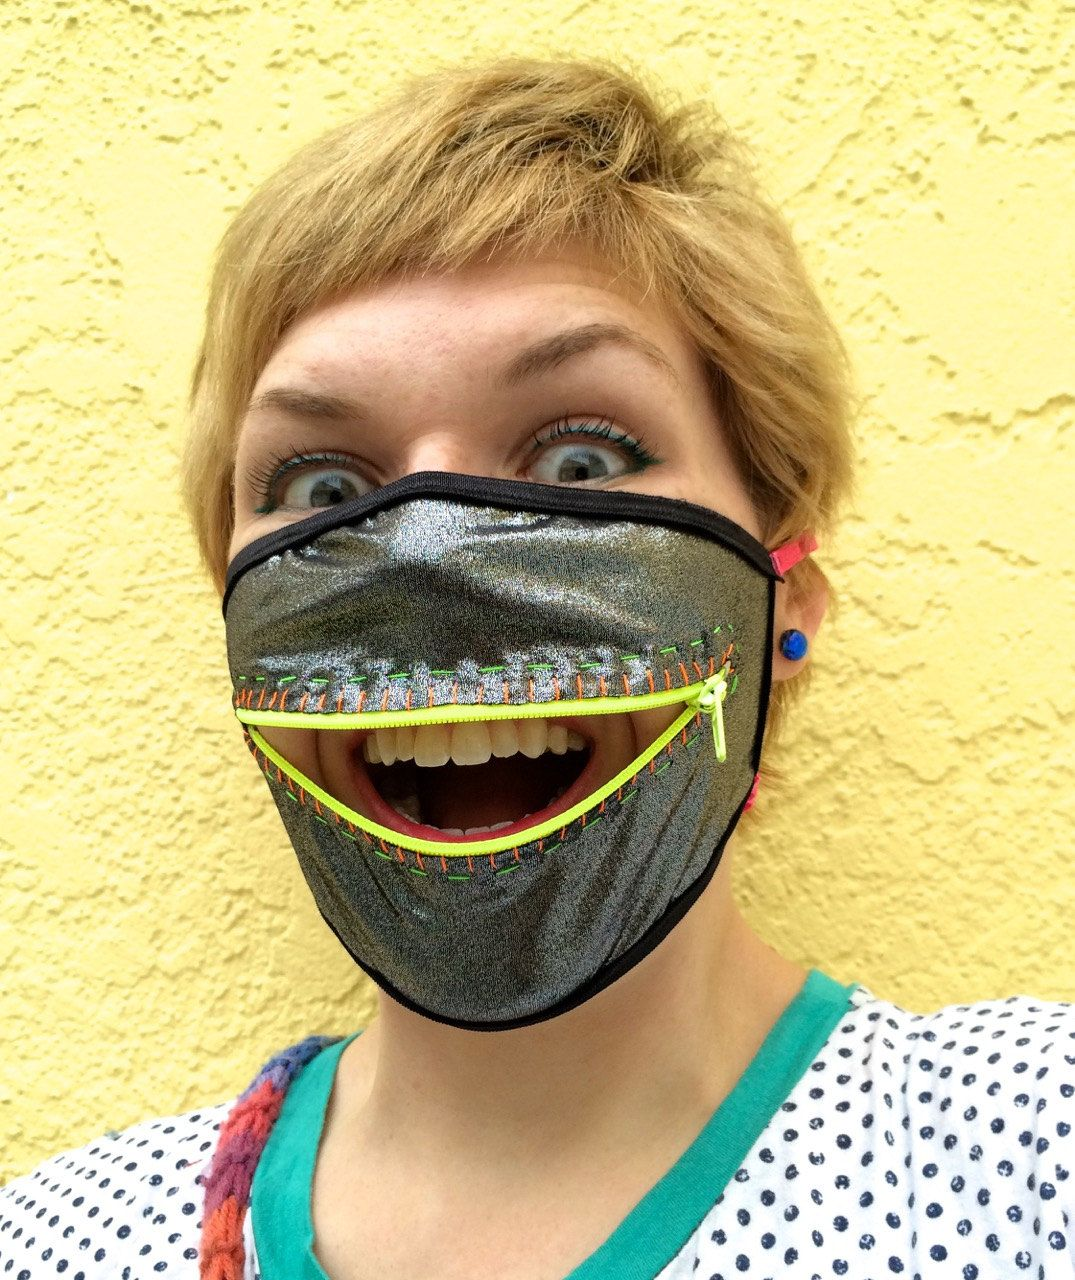 Women's Accessories Buy Cheap Sale Pm2.5 Mouth Mask Solid Anti Dust Mask Nose Filter Windproof Face Muffle Bacteria Flu Fabric Masks Products Are Sold Without Limitations